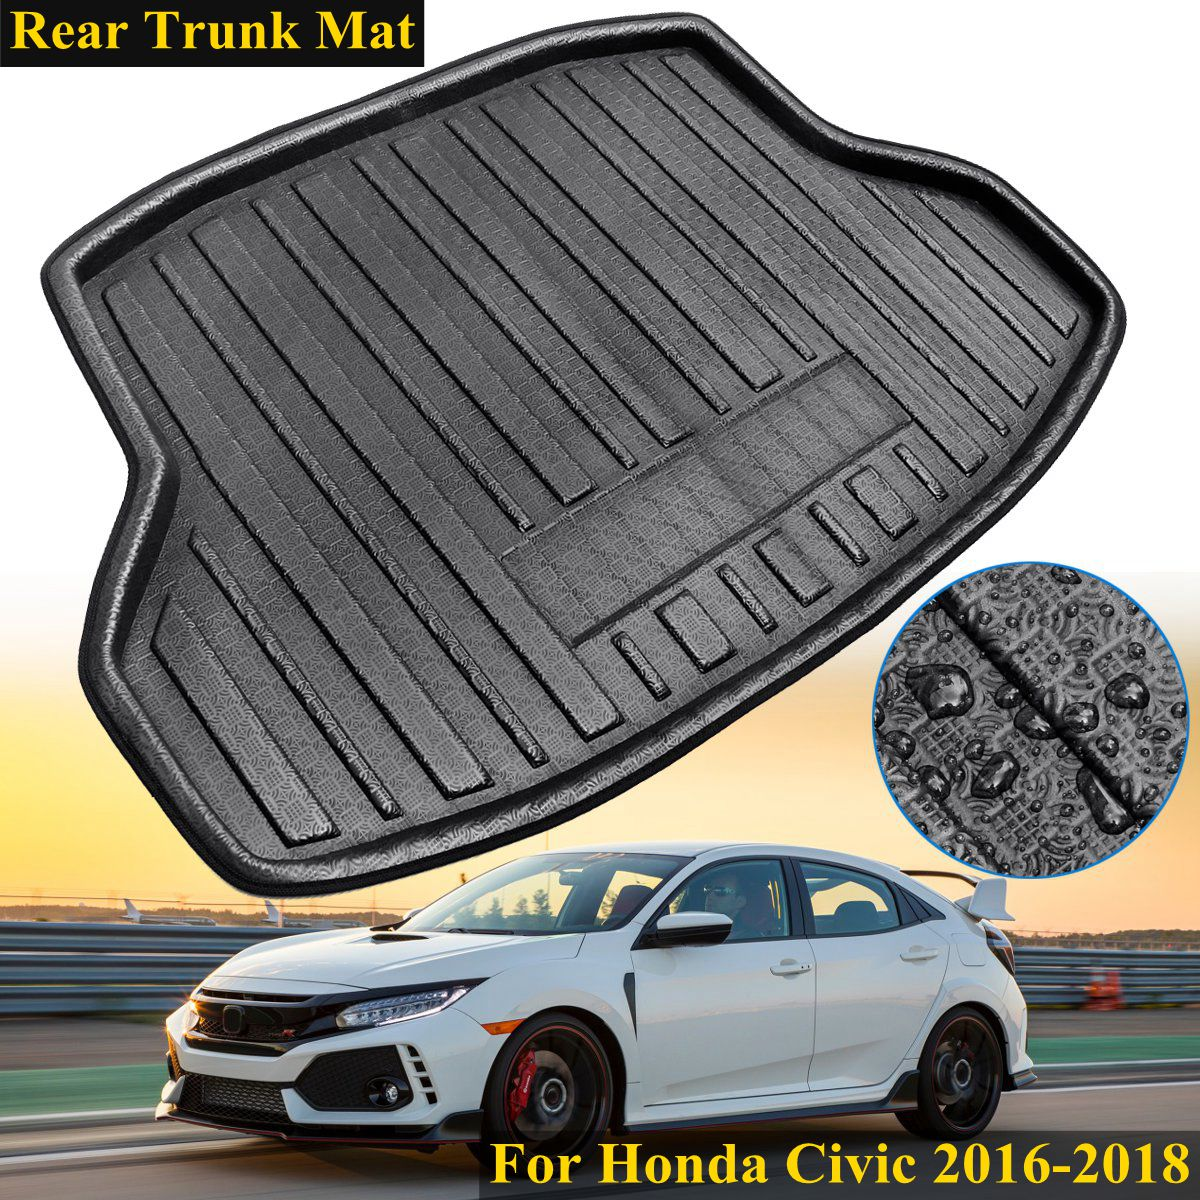 New Rear Trunk Cargo Car styling Interior Accessories Boot Liner Waterproof Mat For Honda for Civic 2016 2017 2018 car believe custom car trunk mat for peugeot 5008 508 206 4008 306 307 308 207 cargo liner interior accessories car styling